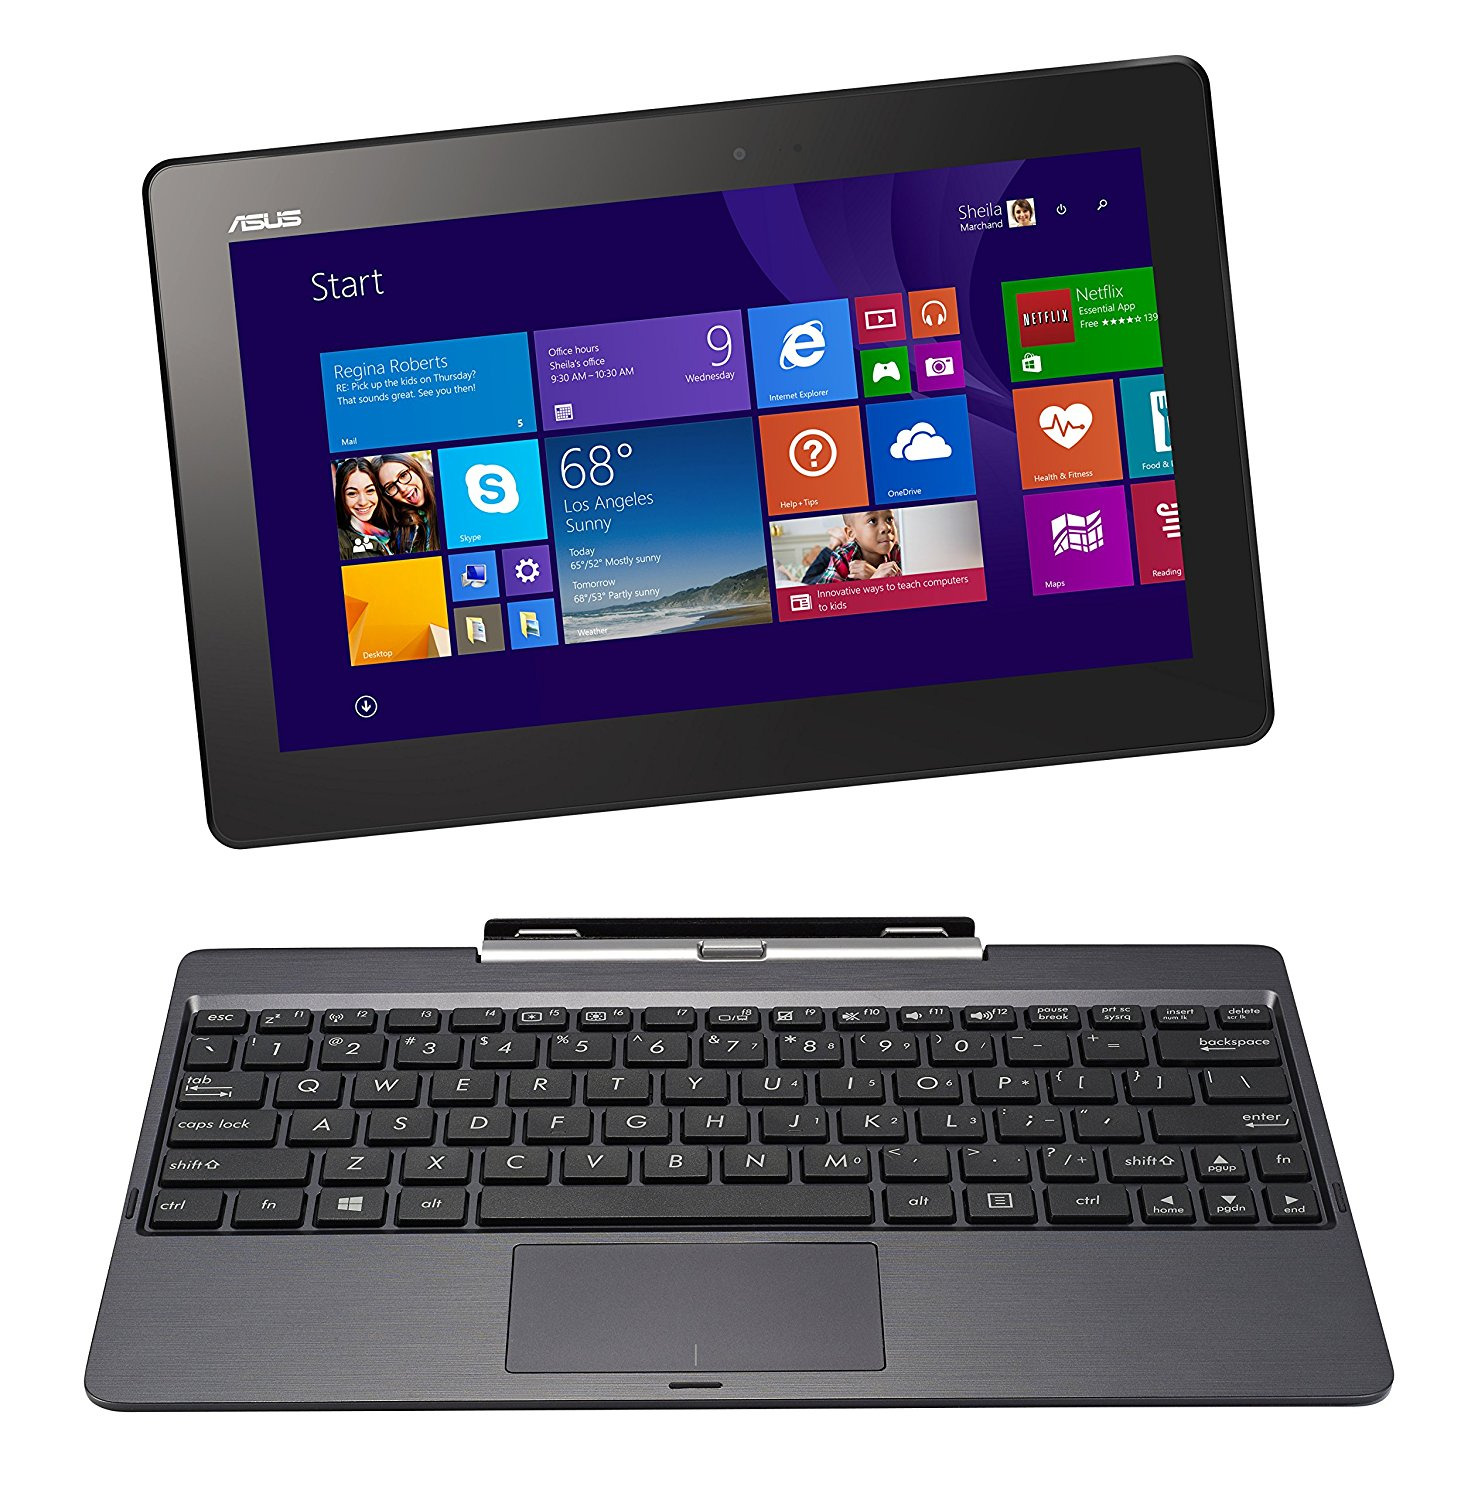 Amazon.com: ASUS T100 10-Inch Wide Laptop [2014]: Computers ...